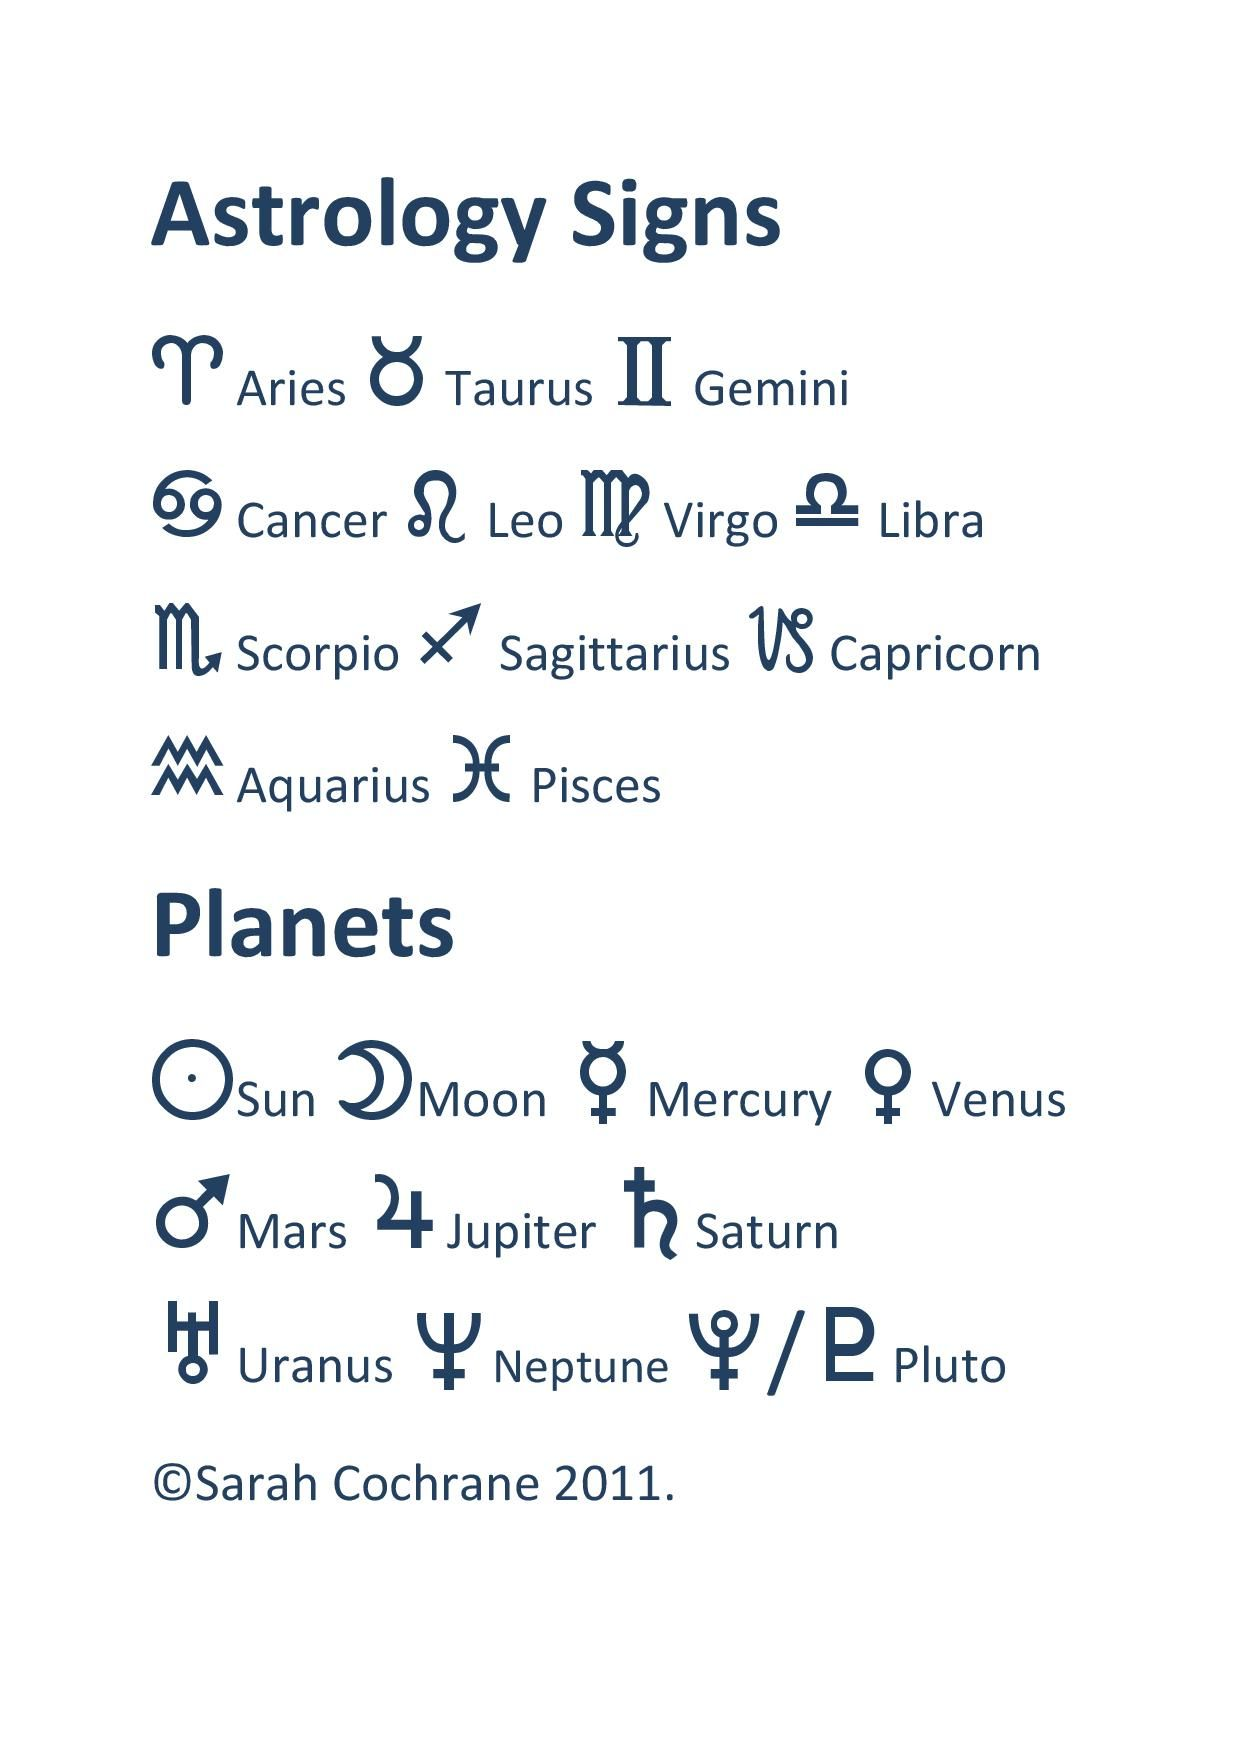 This Is A Basic List Of Some Of The Astrological Glyphs That Are Used In Astrology